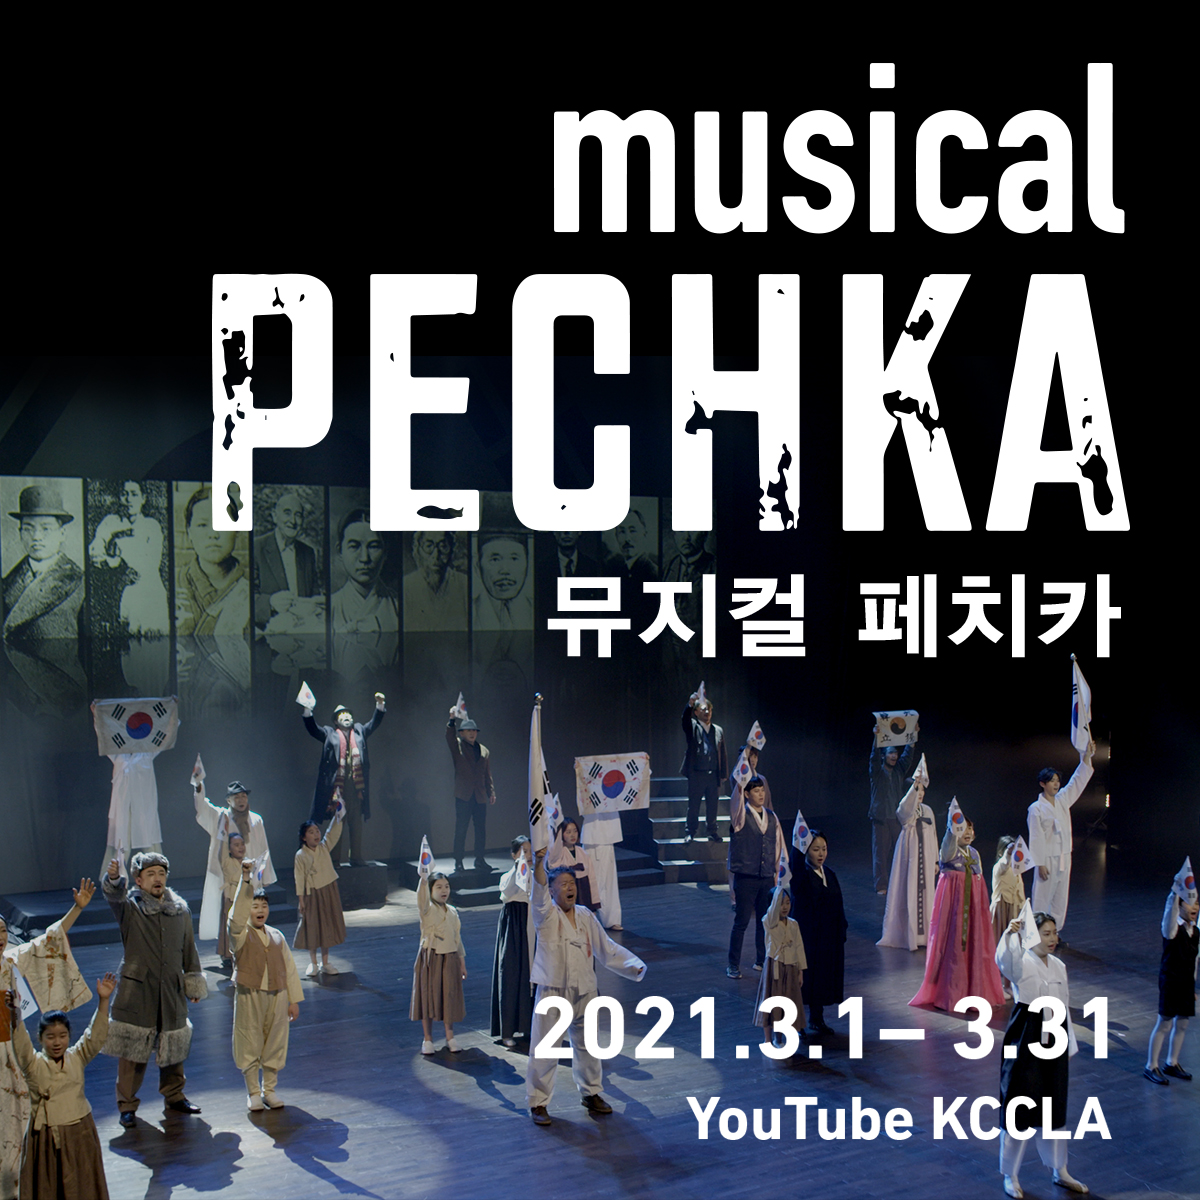 Musical PECHKA